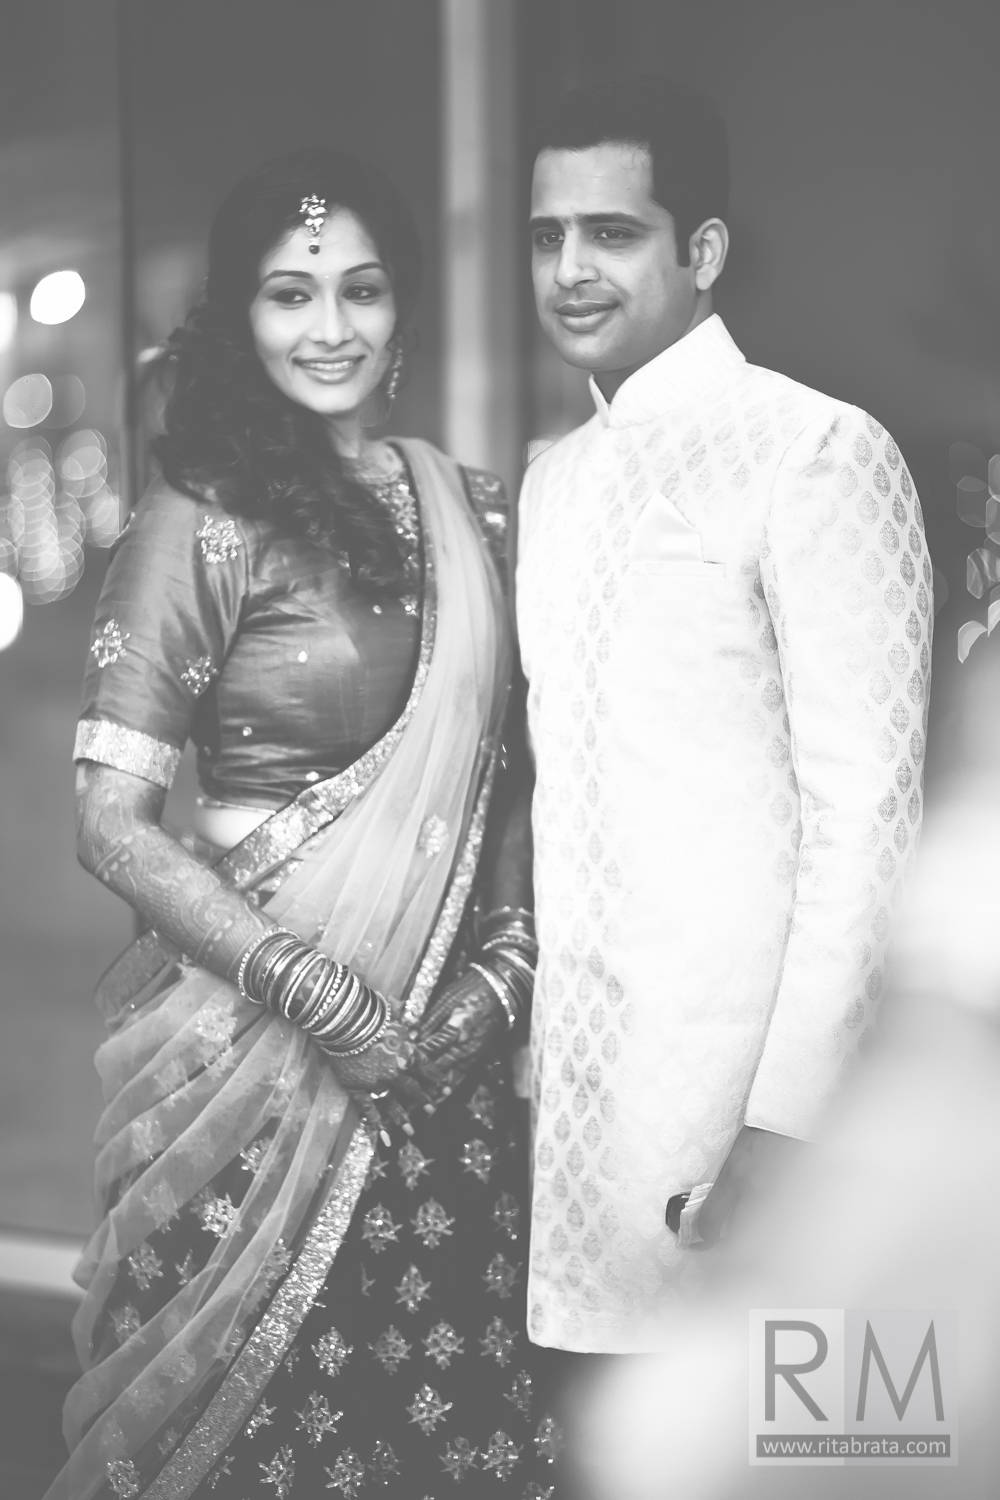 fine-art-wedding-photography-kolkata-ami-rahul-2